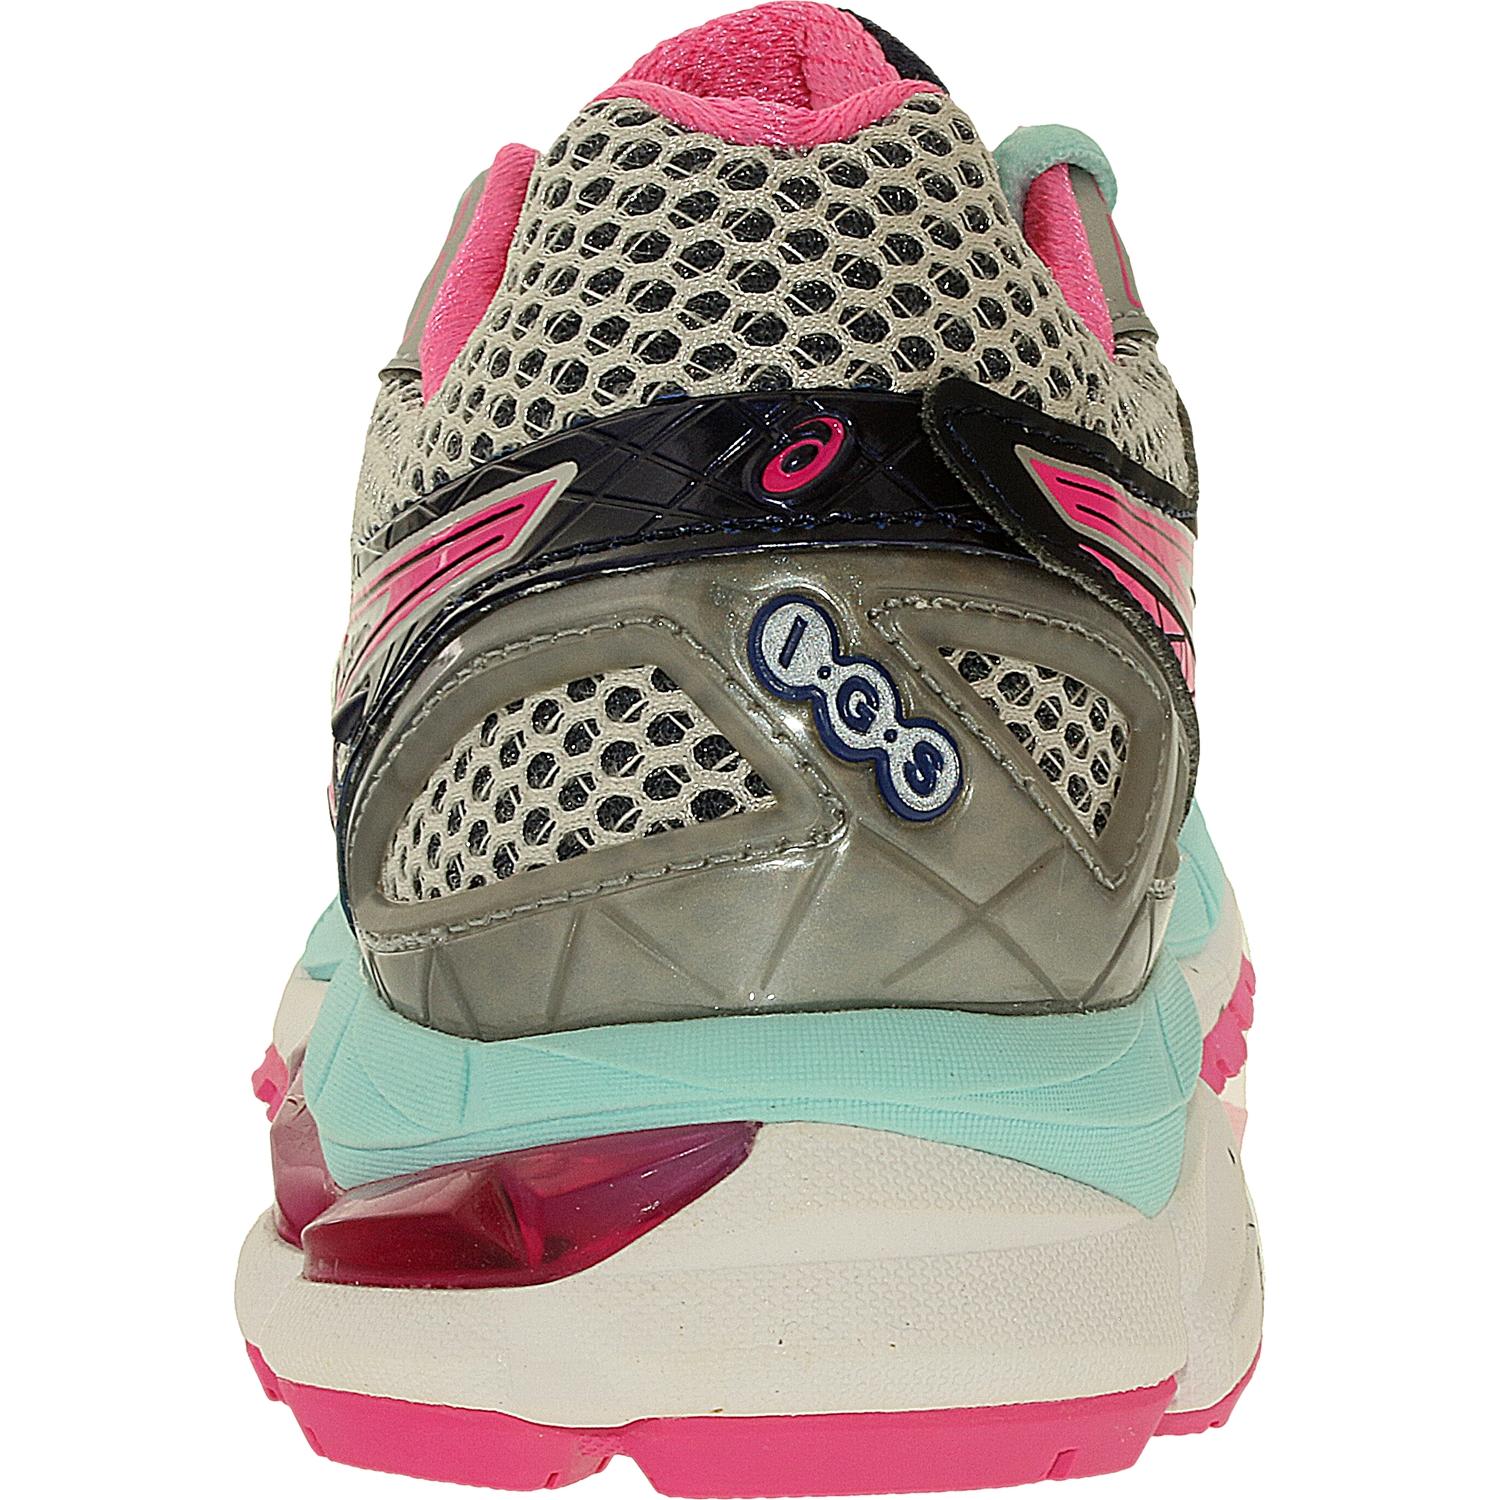 Asics Women's Gt-2000 3 Lightning/Hot Pink/Navy Low Top Running Shoe - 6.5N